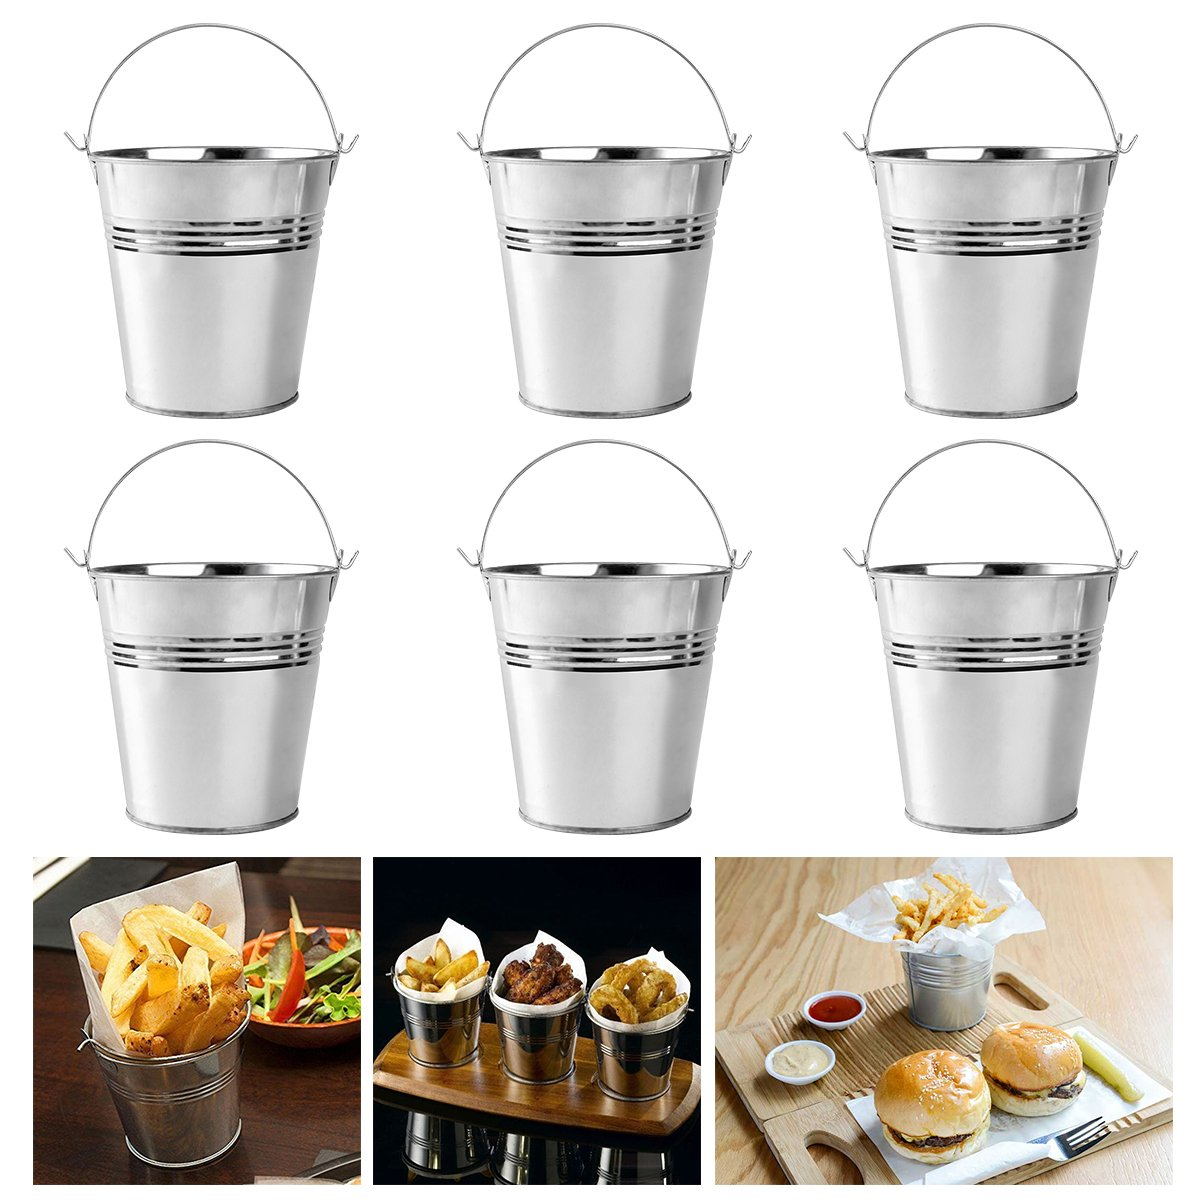 Ounona Mini Metal Bucket Set Of 6 10.5x7.2x10.5cm by Ounona